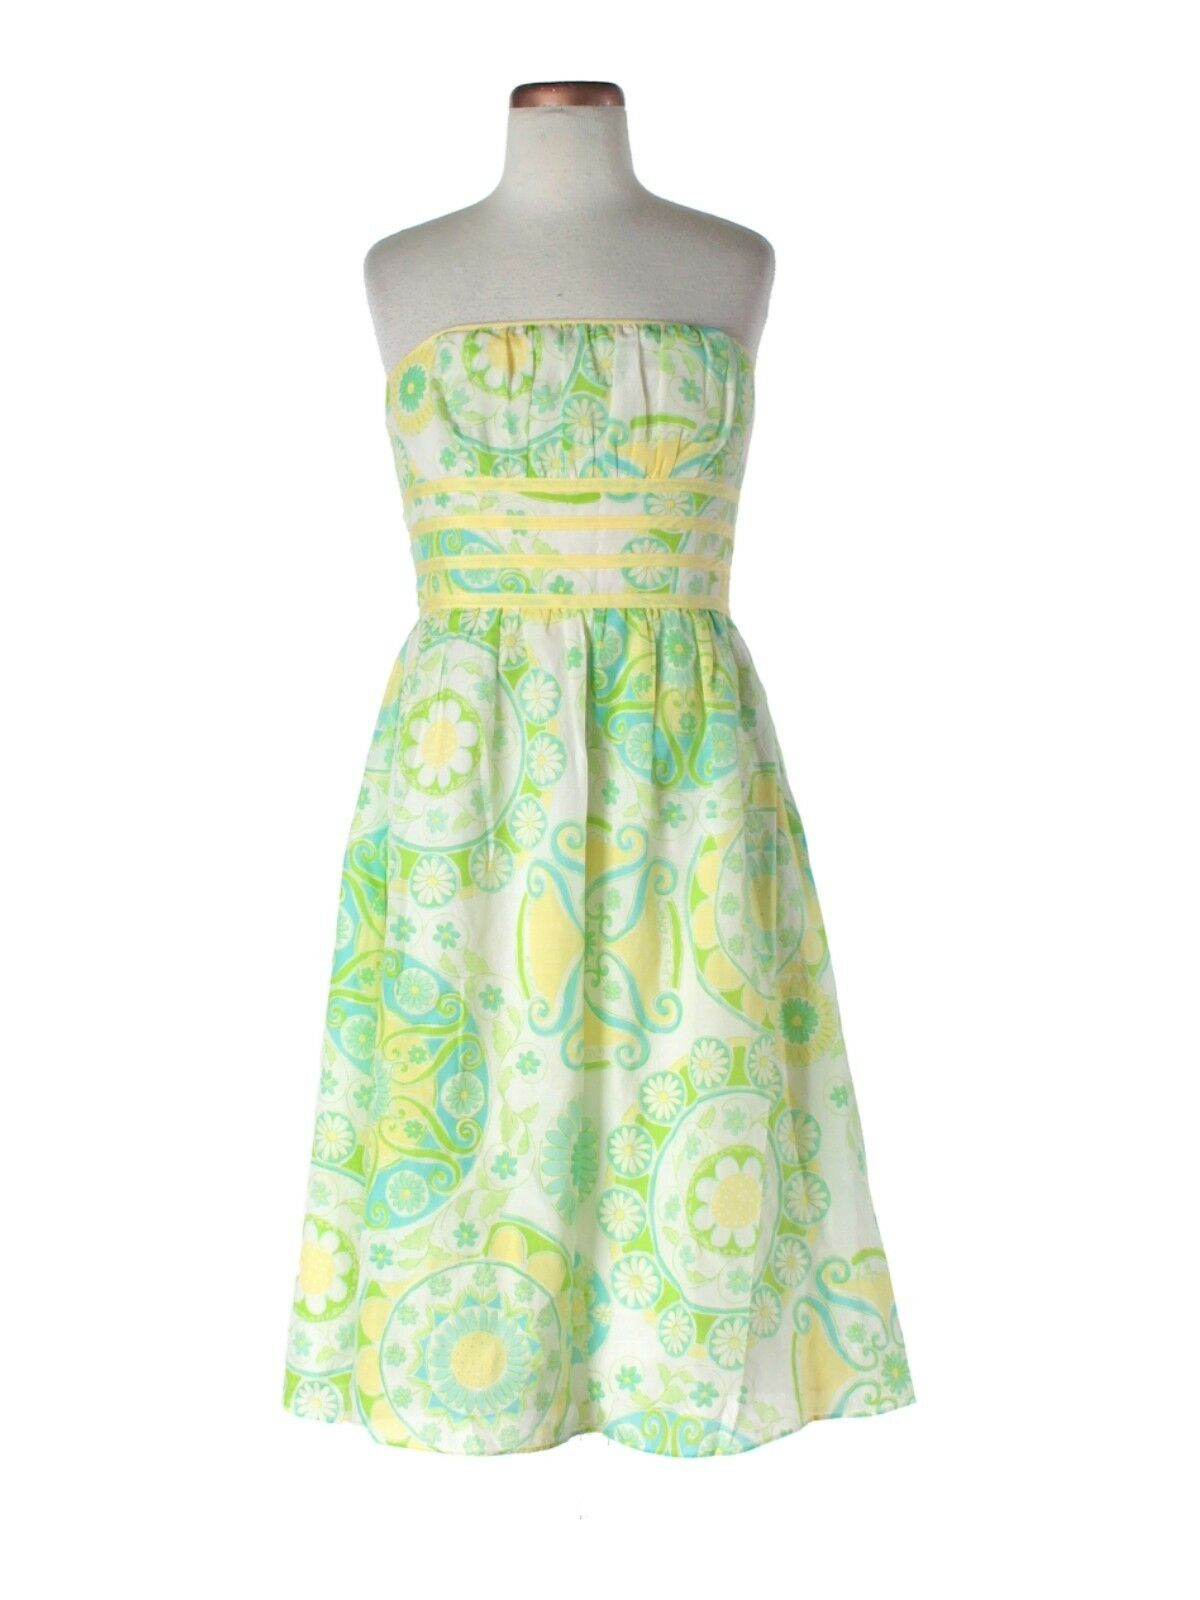 Women Lilly Pulitzer Fountain of Youth Yellow Green Strapless  Dress Size 0